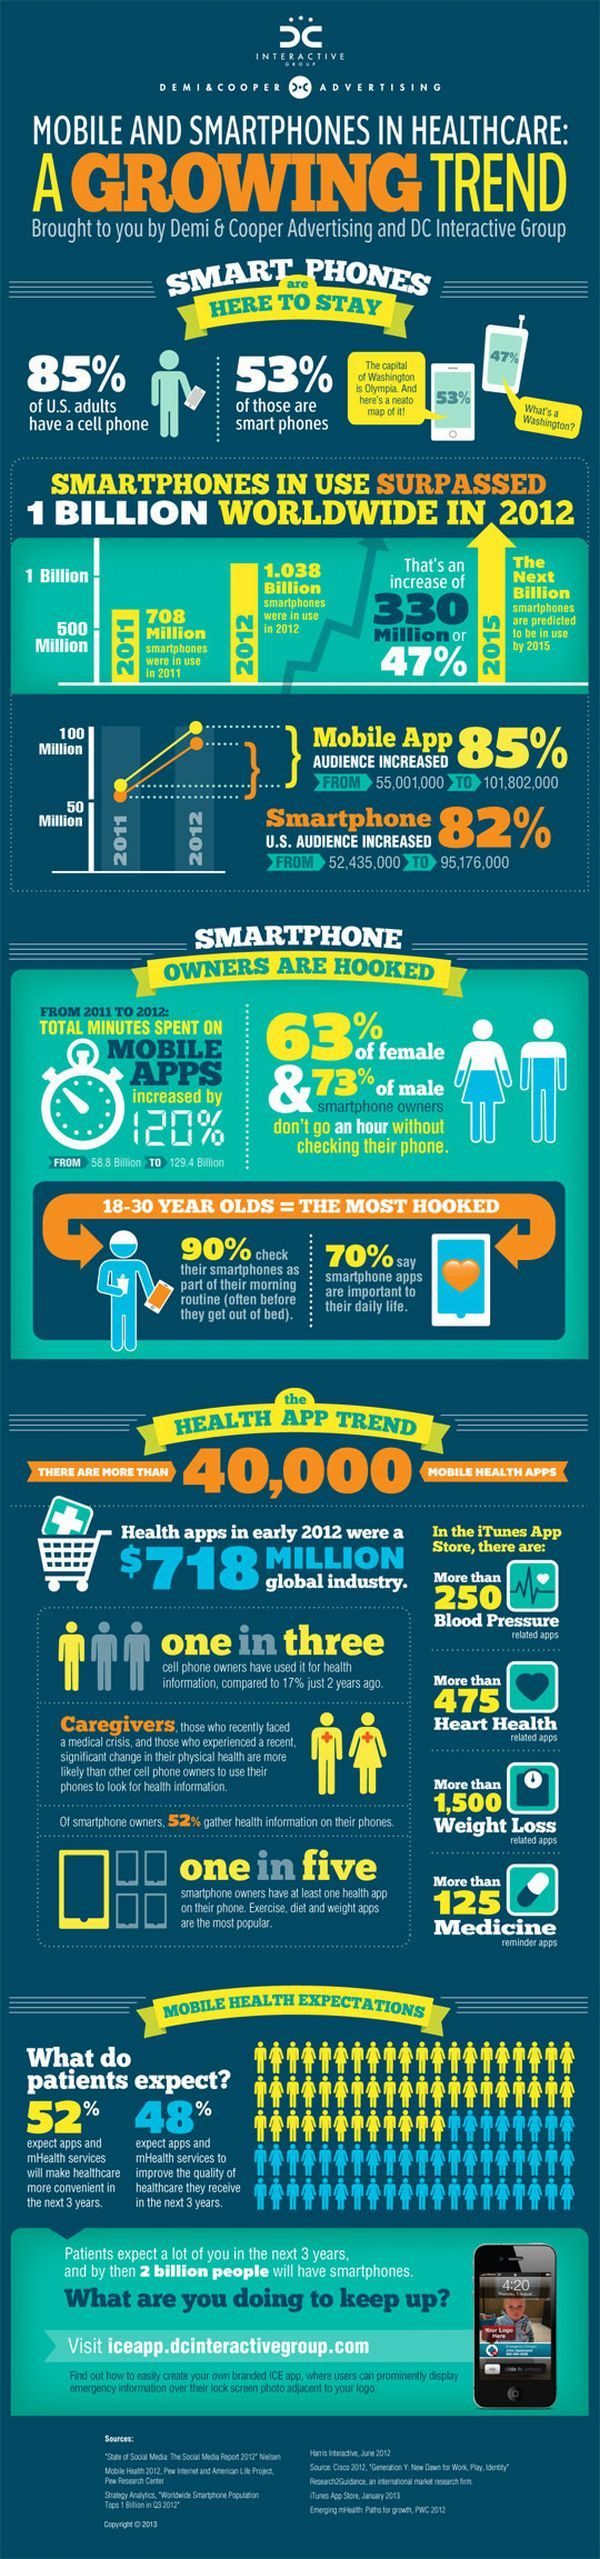 With the skyrocketing of smartphone use, #mhealth apps and patient involvement in care, patients will be expecting a lot of providers in the next 3 years. | Mobile and smartphones in healthcare: a growing trend #Infographic via @Helena Loi Smith Care Communication News